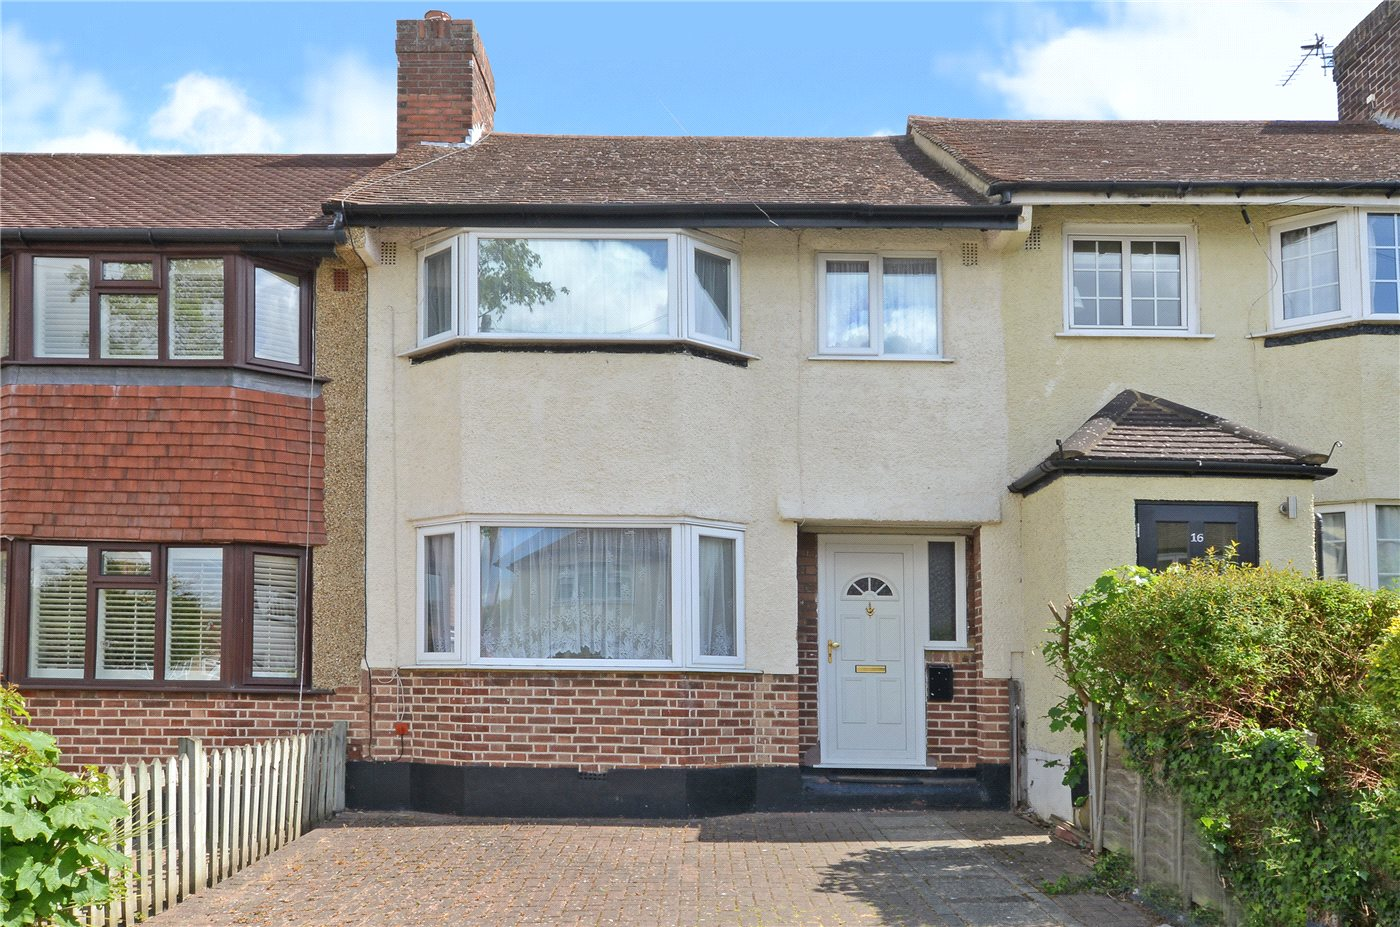 3 Bedrooms Terraced House for sale in Delcombe Avenue, Worcester Park, KT4